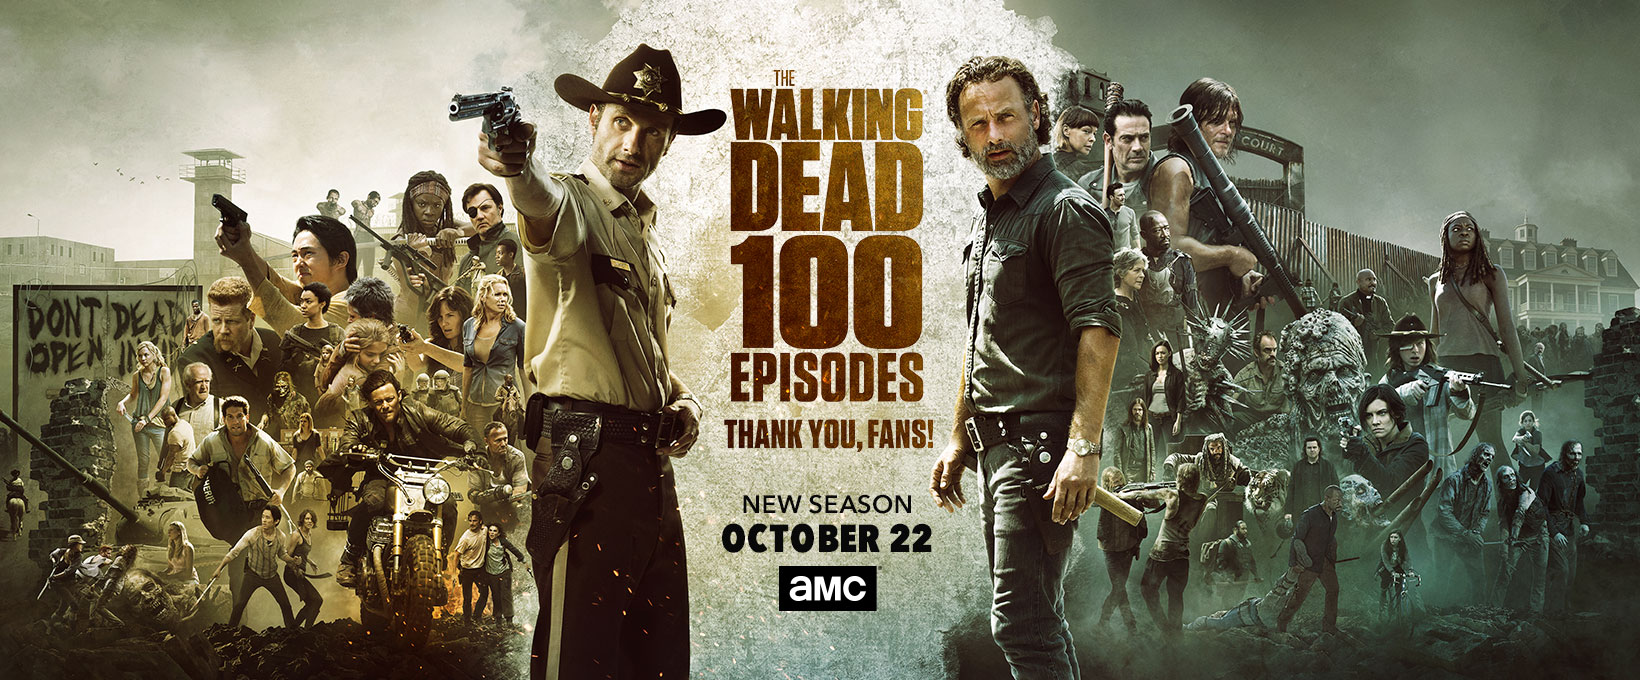 The Walking Dead kertas dinding called 100 Episodes Poster ~ Season 8